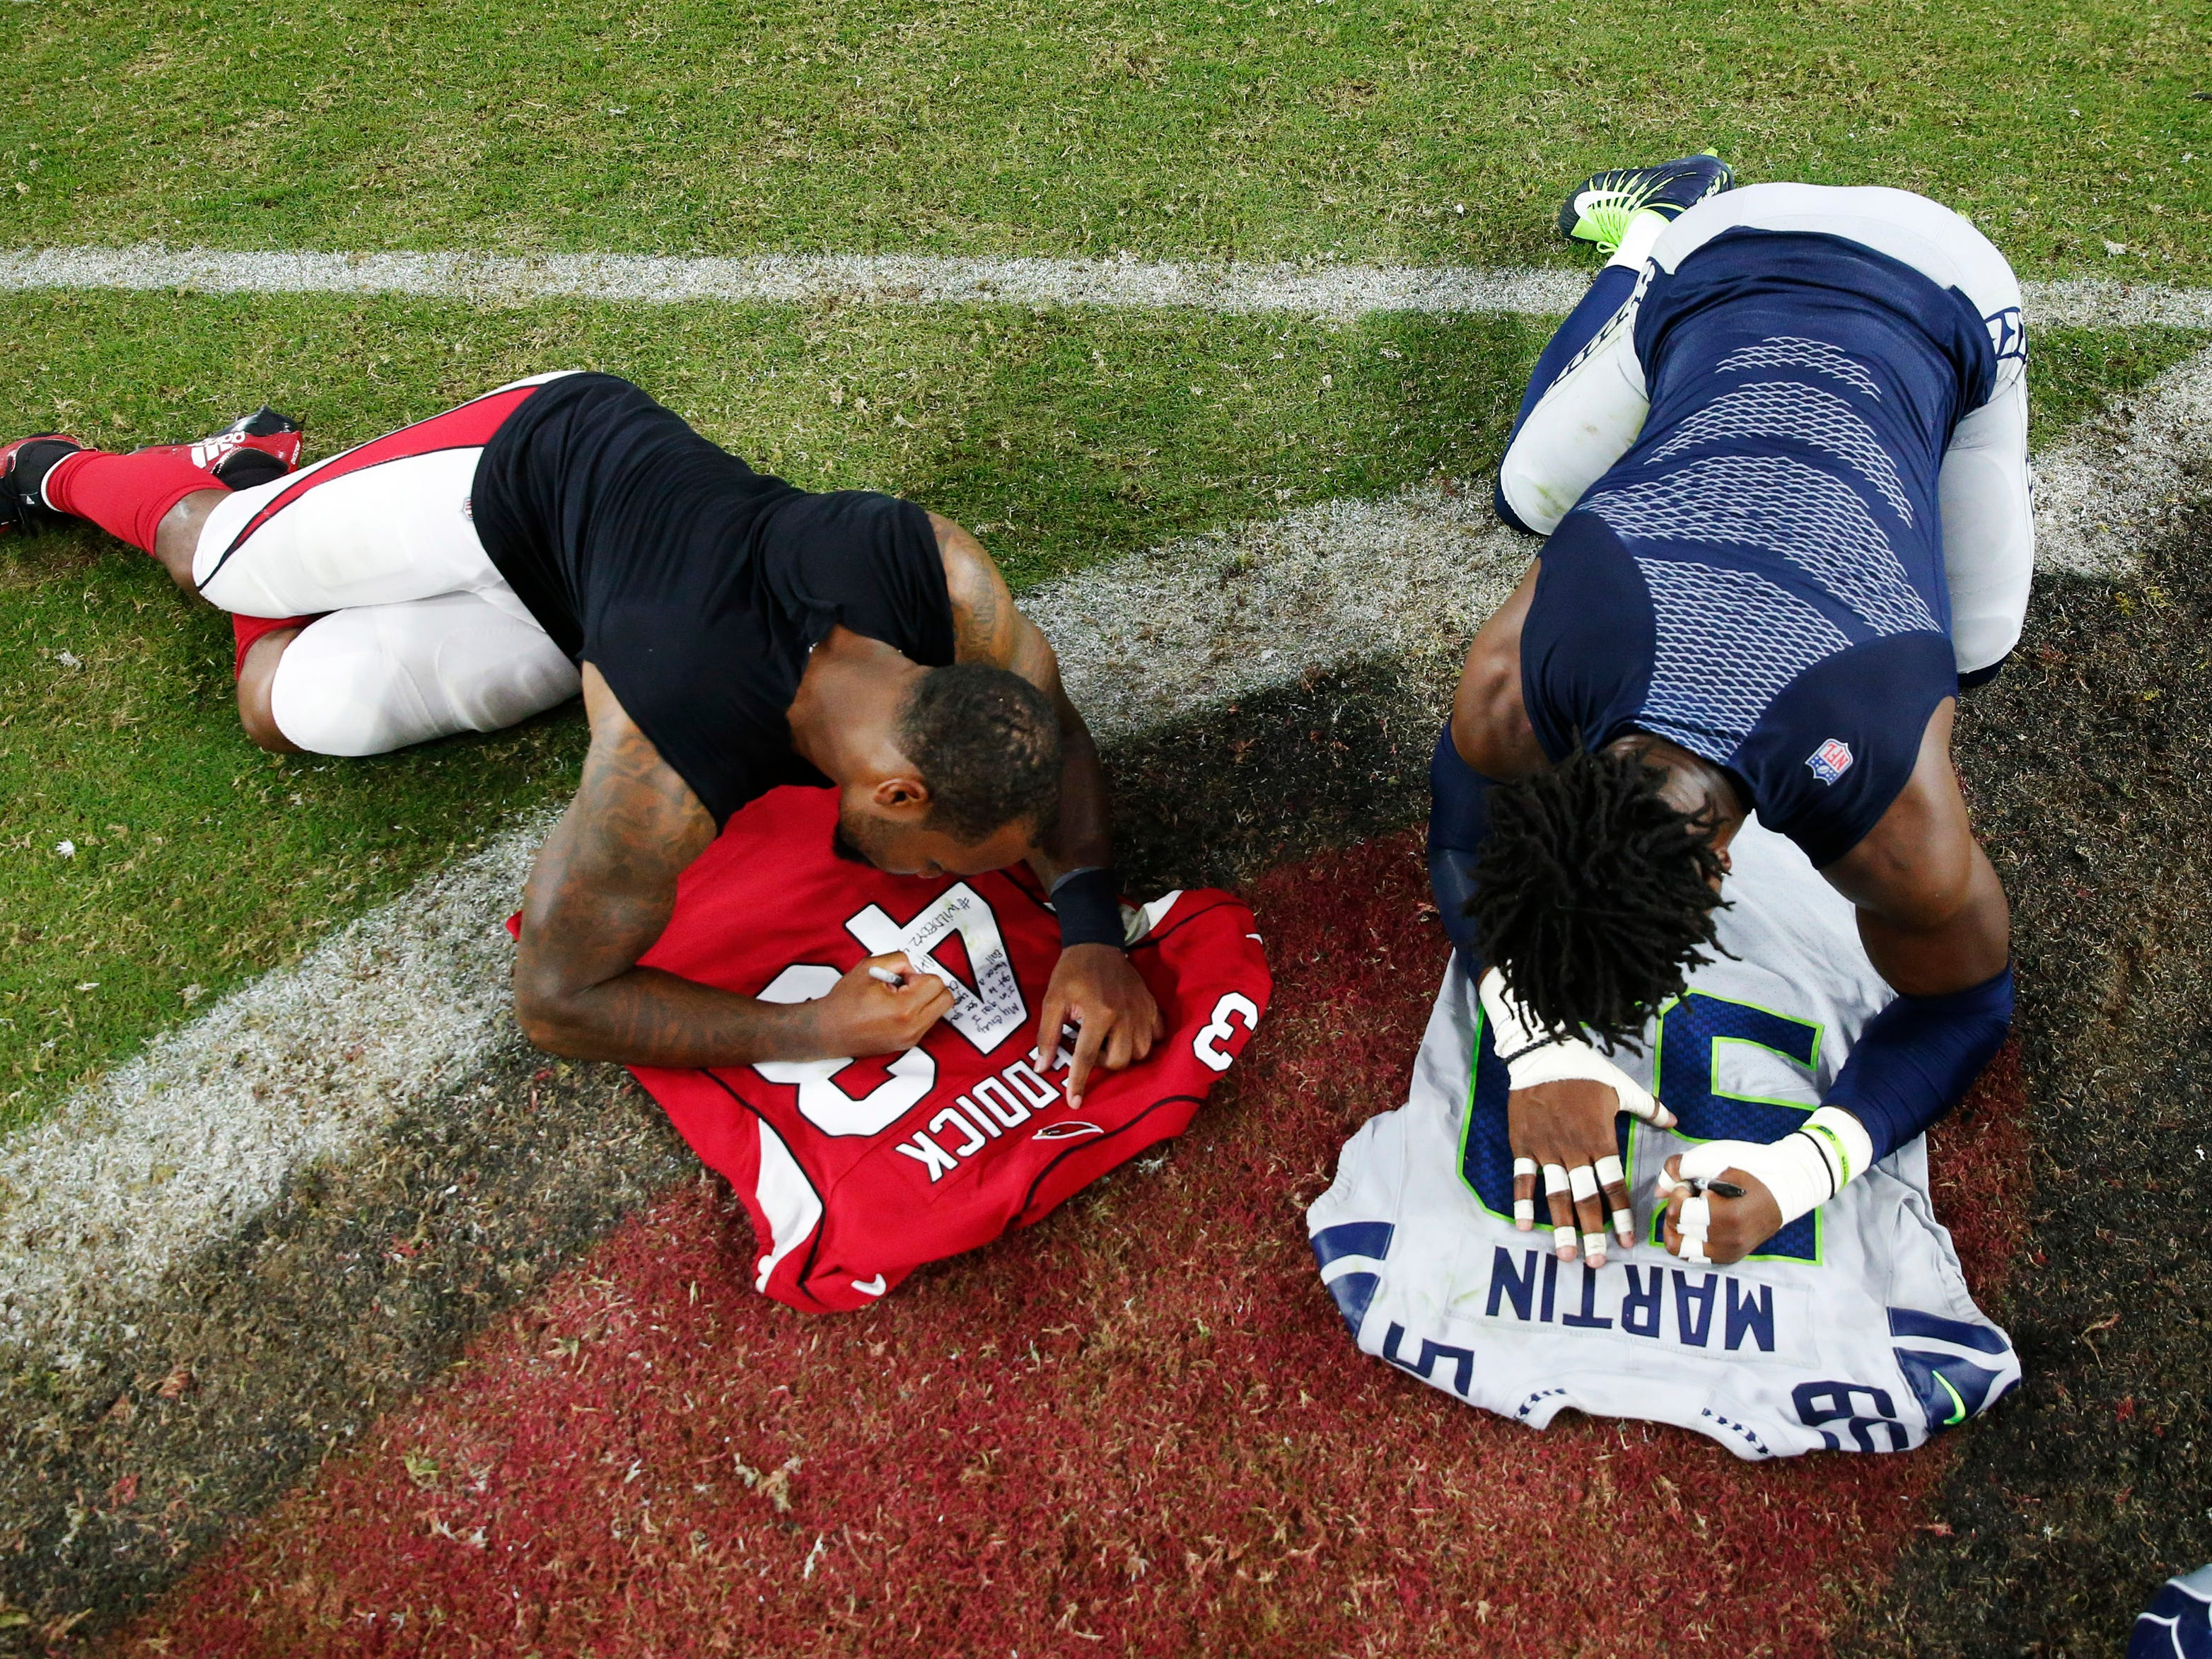 Arizona Cardinals linebacker Haason Reddick (43) and Seattle Seahawks linebacker Jake Martin (59) exchange jerseys after the Seattle Seahawks won 20-17 at State Farm Stadium in Glendale, Ariz. September 30, 2018.